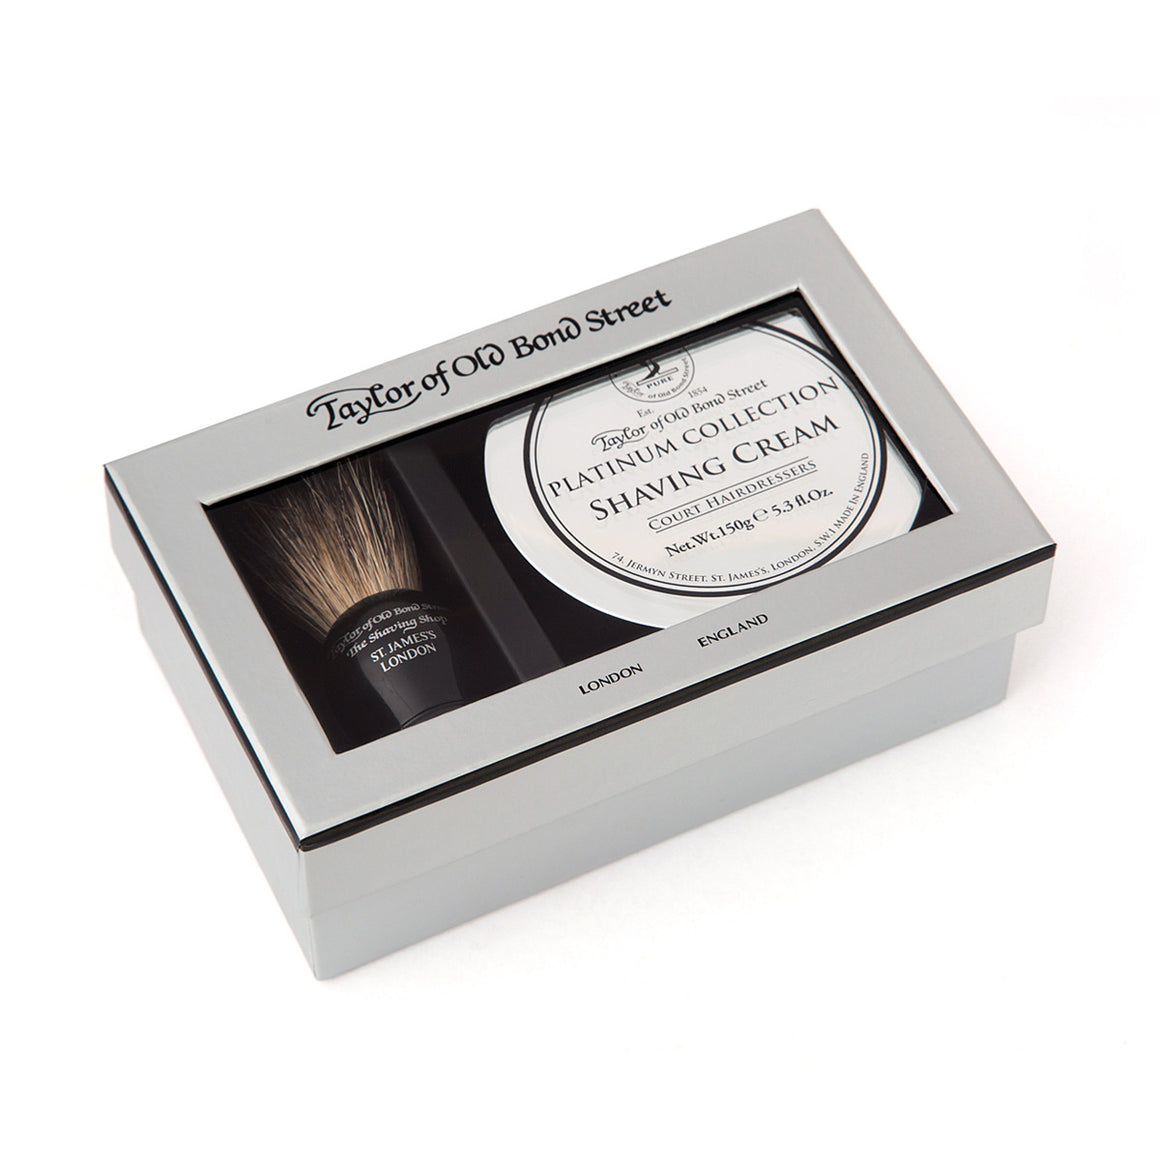 Black Pure Badger & Platinum Shaving Cream Gift Box